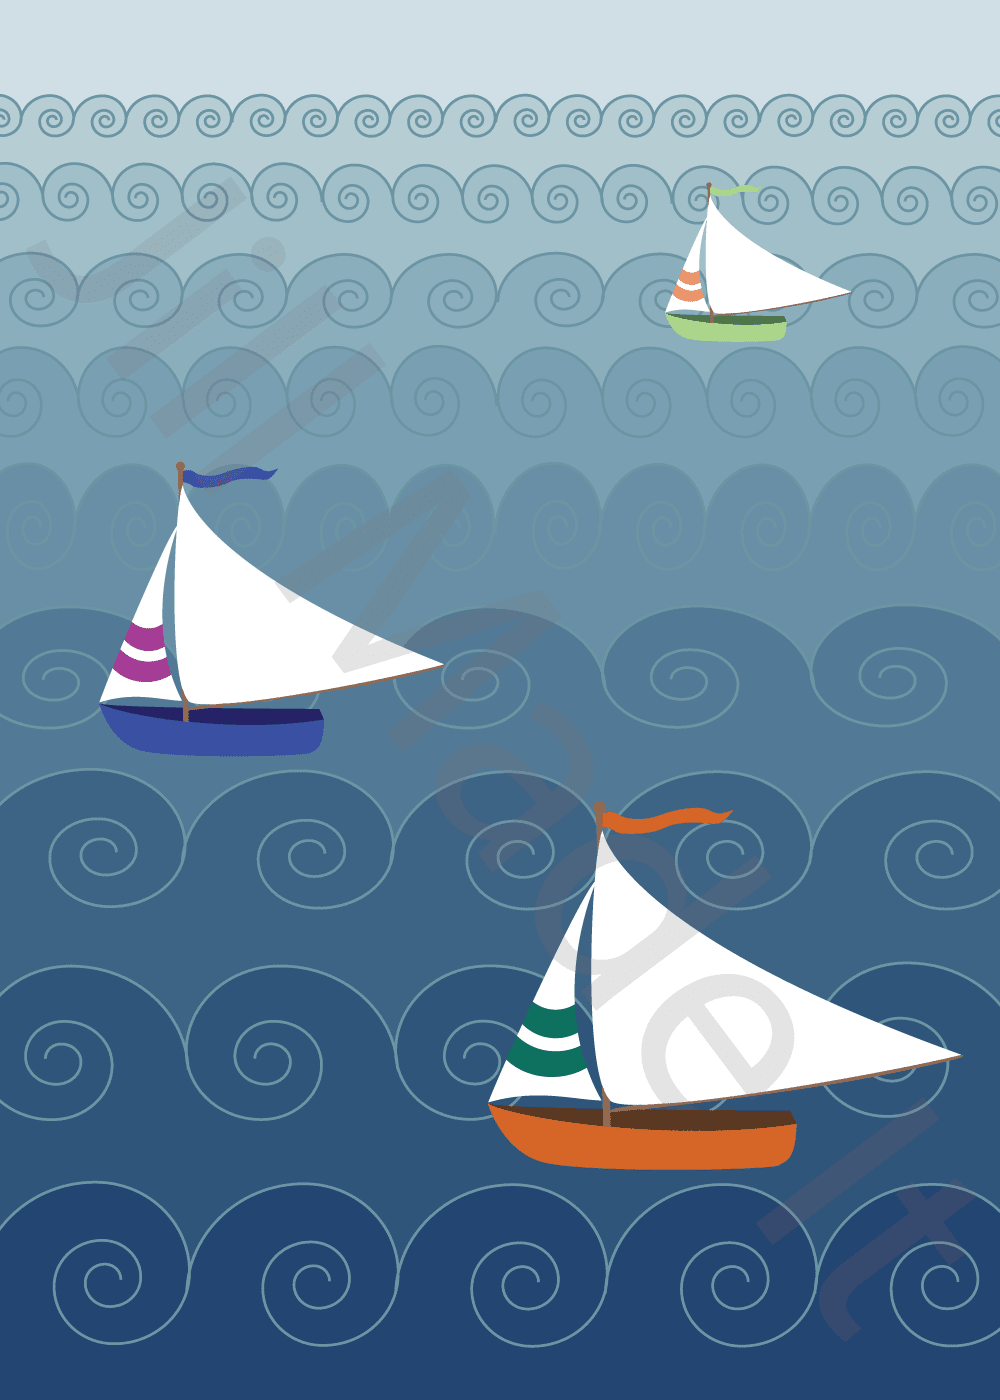 Sailboats on a Wavy Sea (with Illustrator)